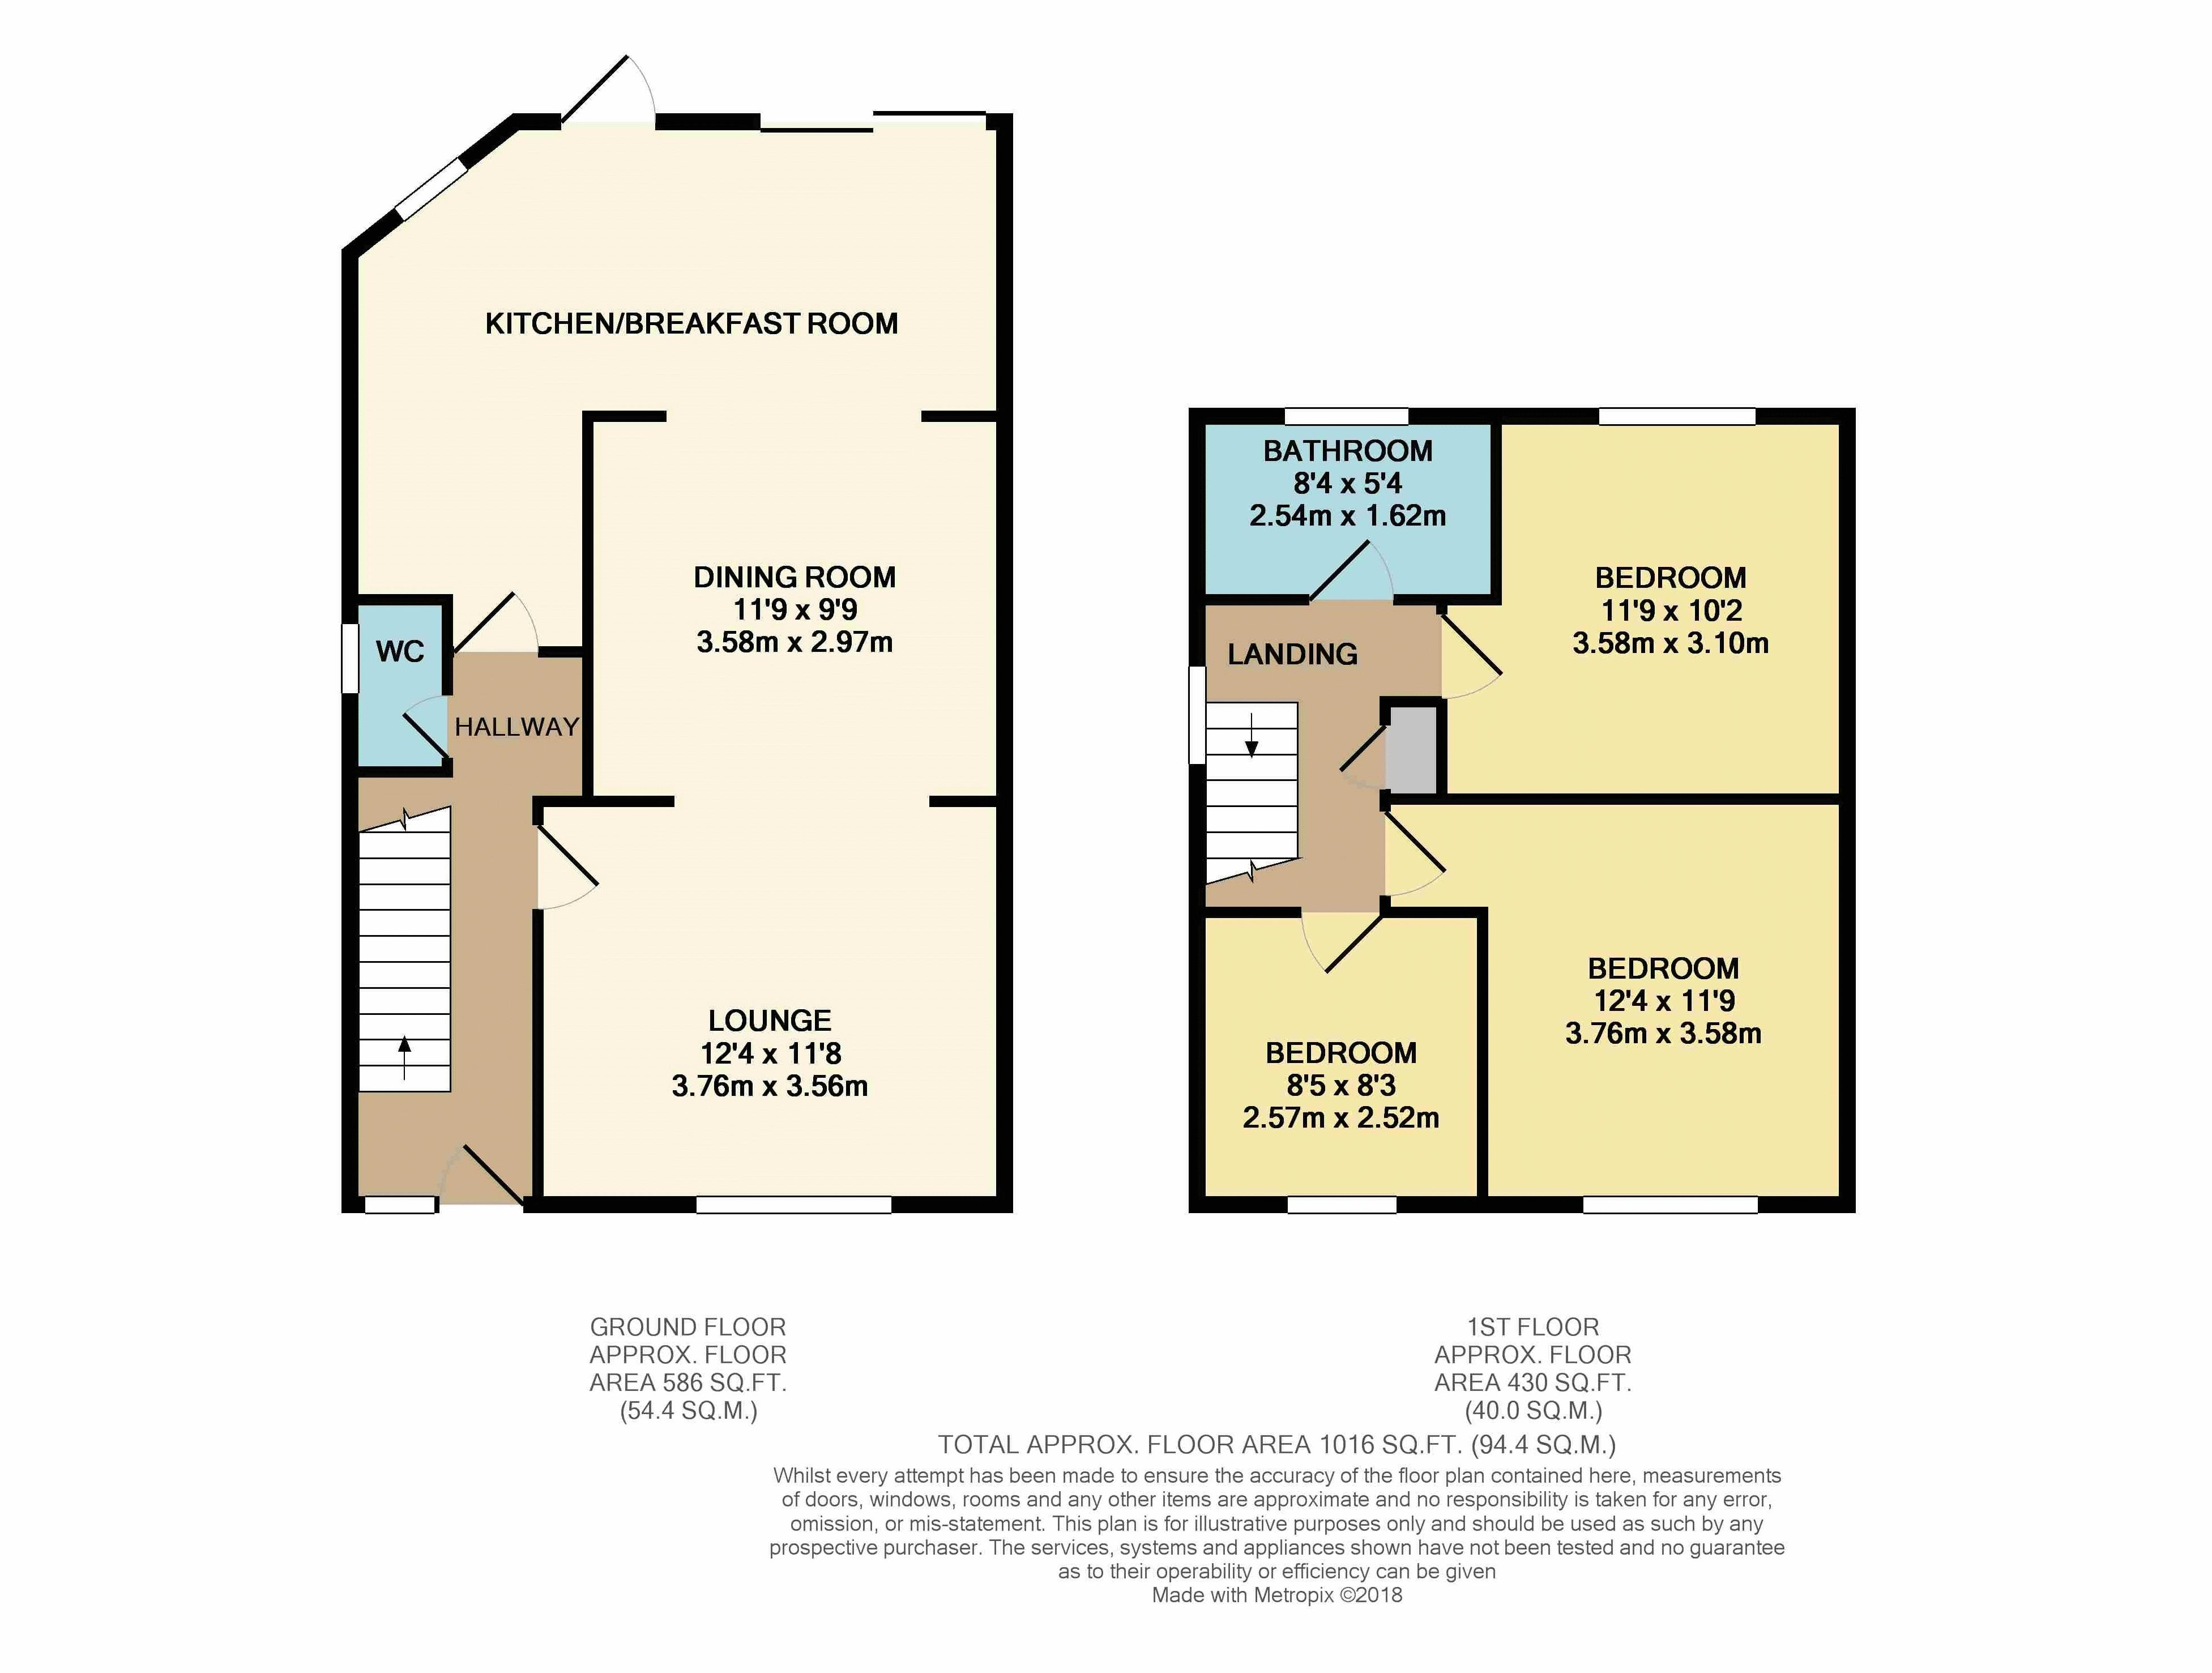 3 bedroom house for sale in luton for How much is a bathroom worth on an appraisal